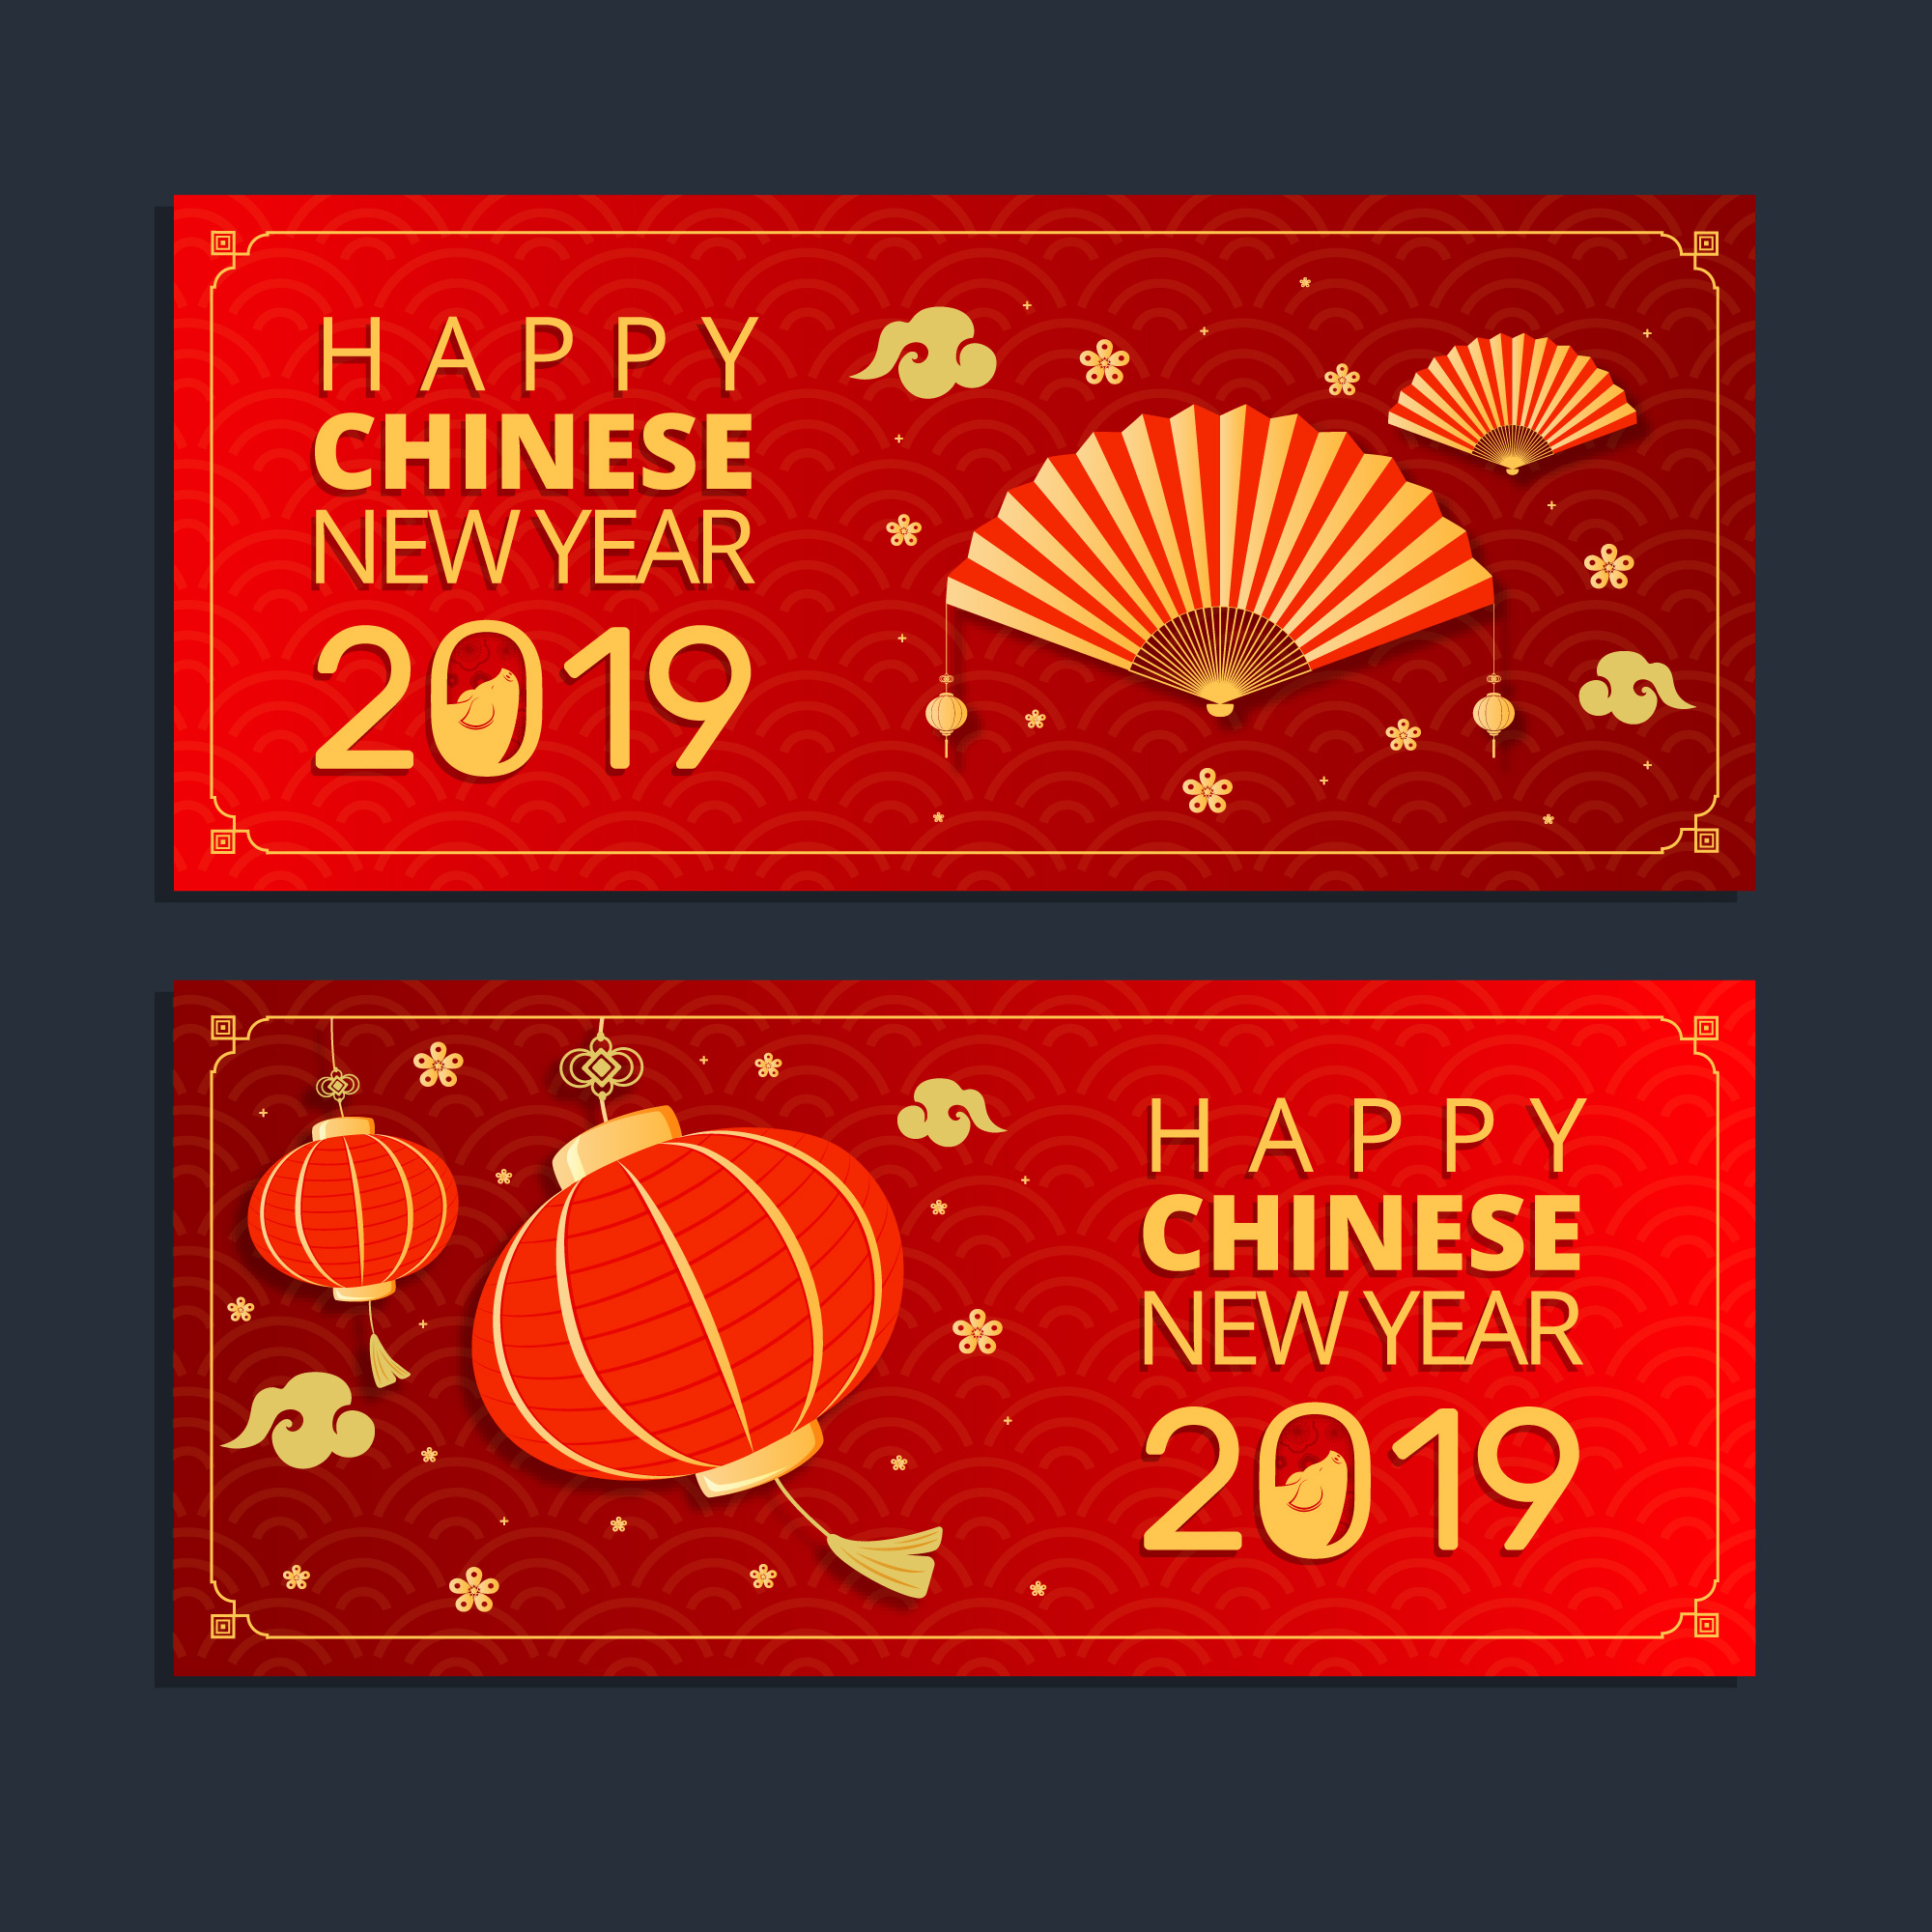 2019新年农历猪年贺卡矢量素材模板 2019 New Year Lunar Year Of The Pig Greeting Card Vector Material Template插图(2)